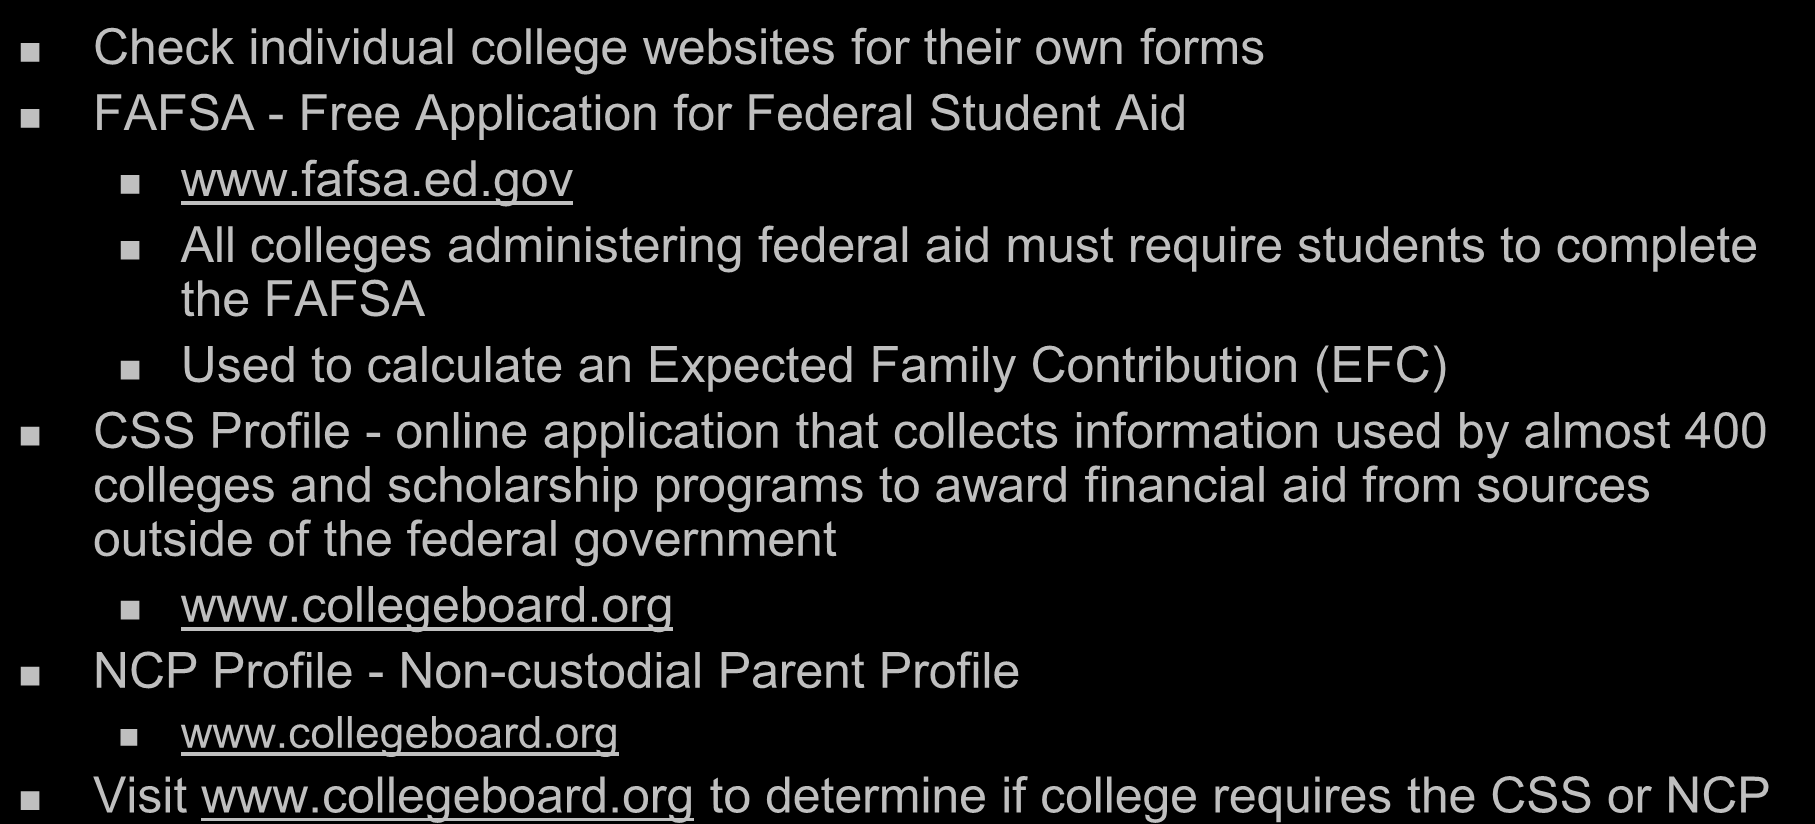 Where Do I Access Financial Aid Forms? Check individual college websites for their own forms FAFSA - Free Application for Fede